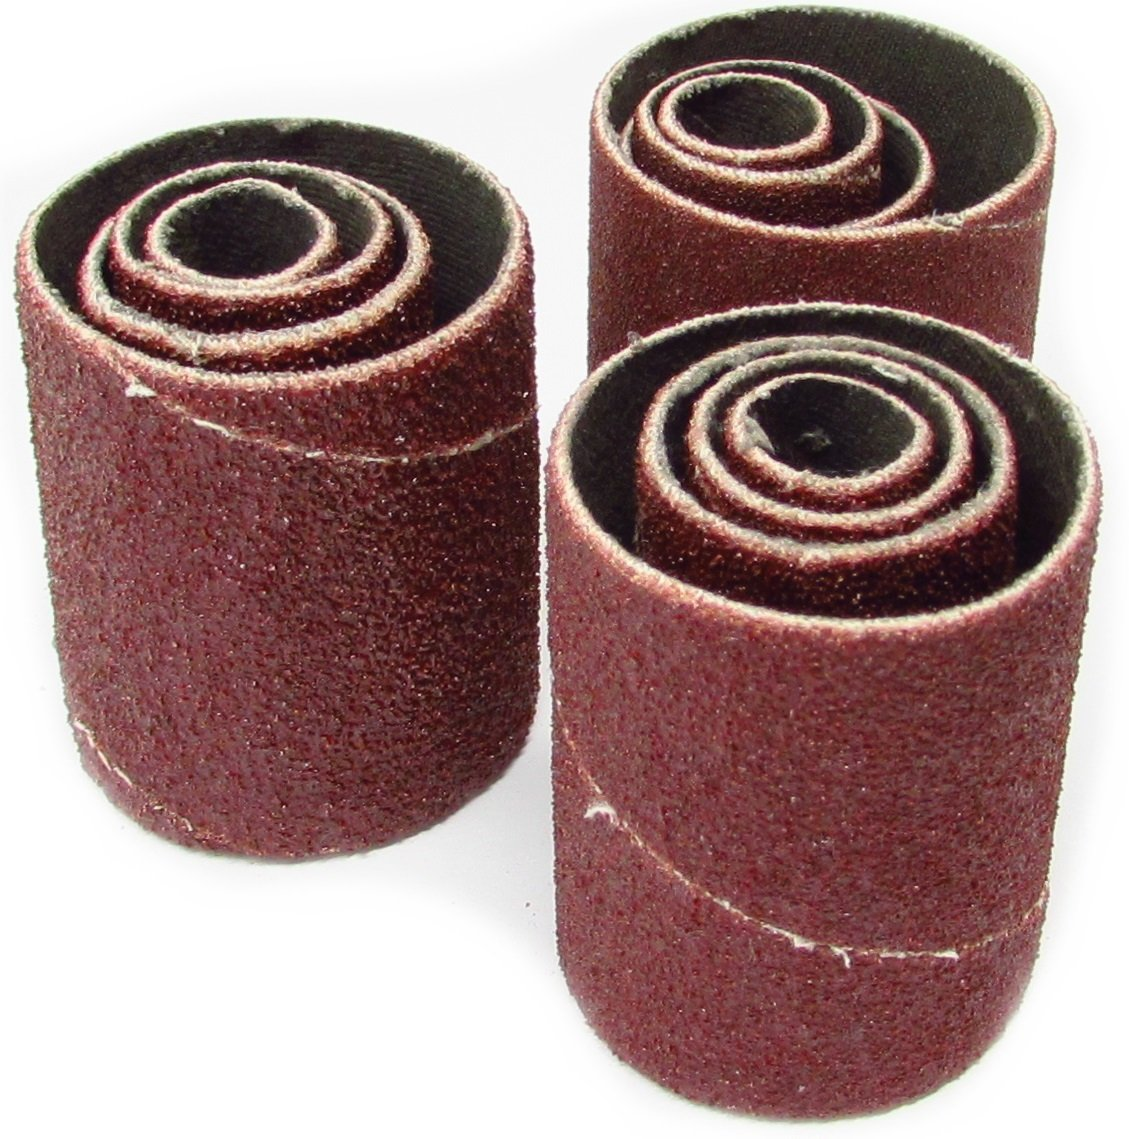 2 inch Long Sanding Drums and Sleeves Set of 28